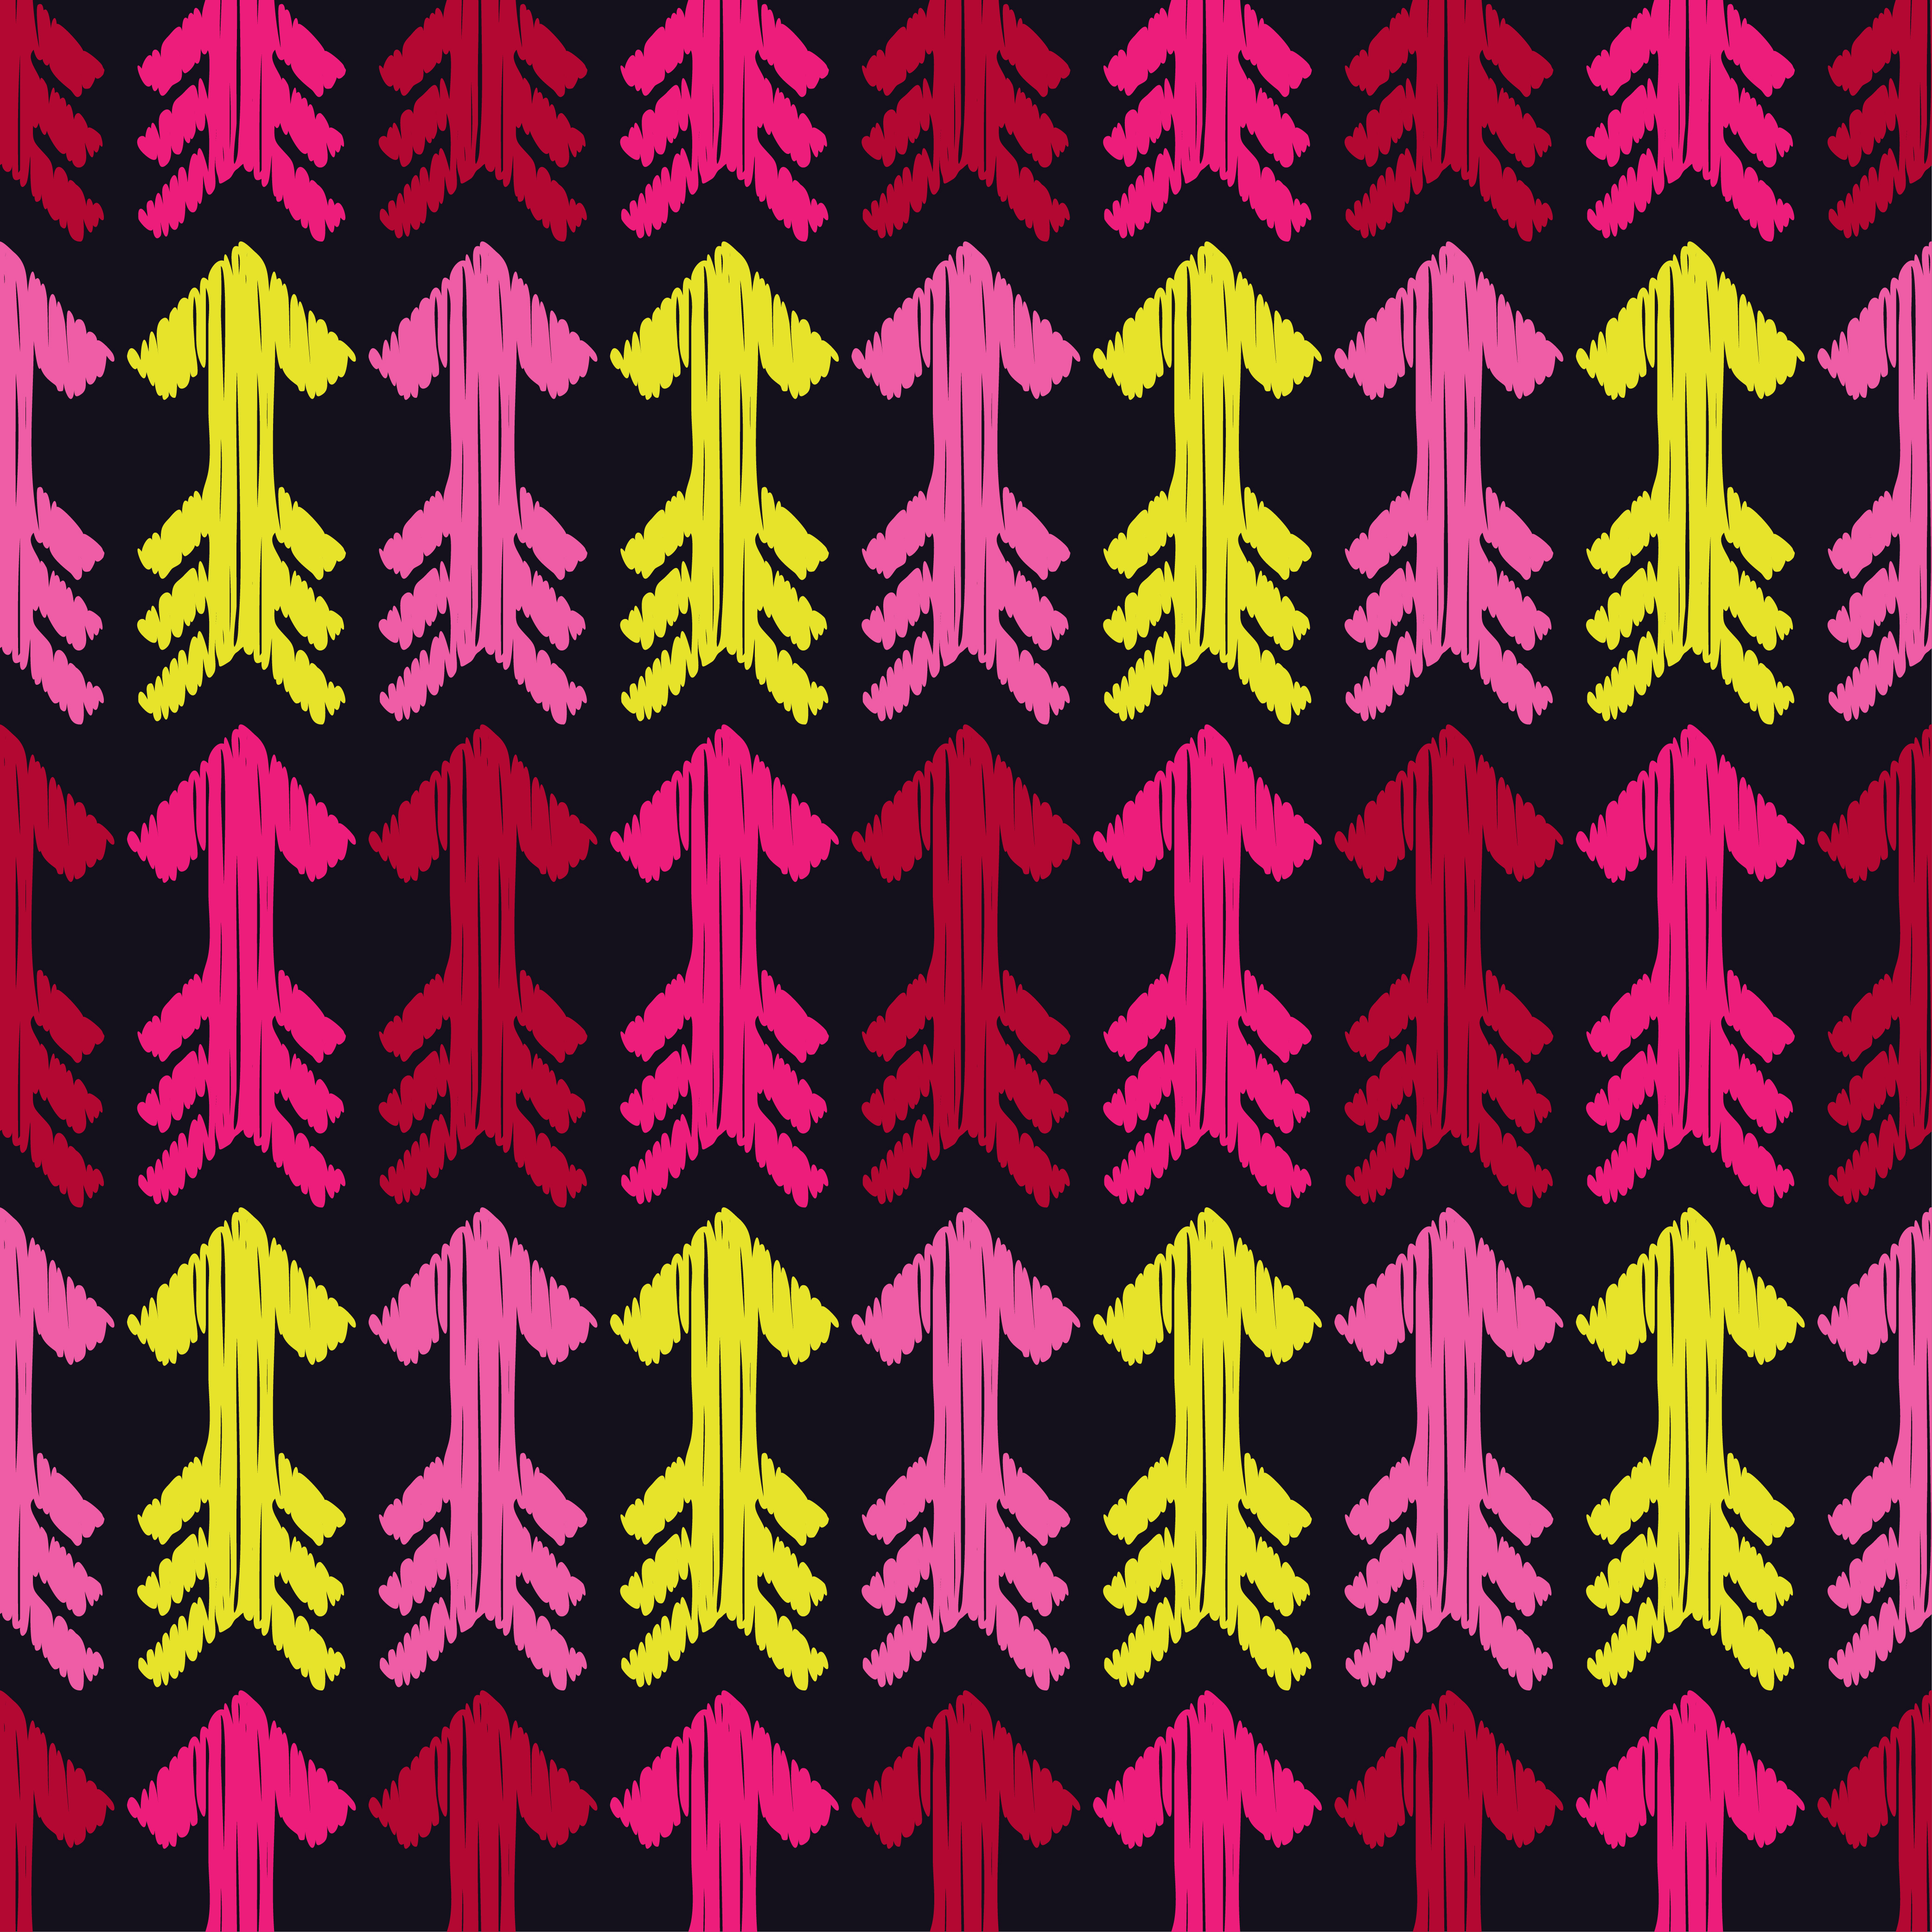 6 Ethnic boho seamless pattern. Arrows scribble texture.  example image 6